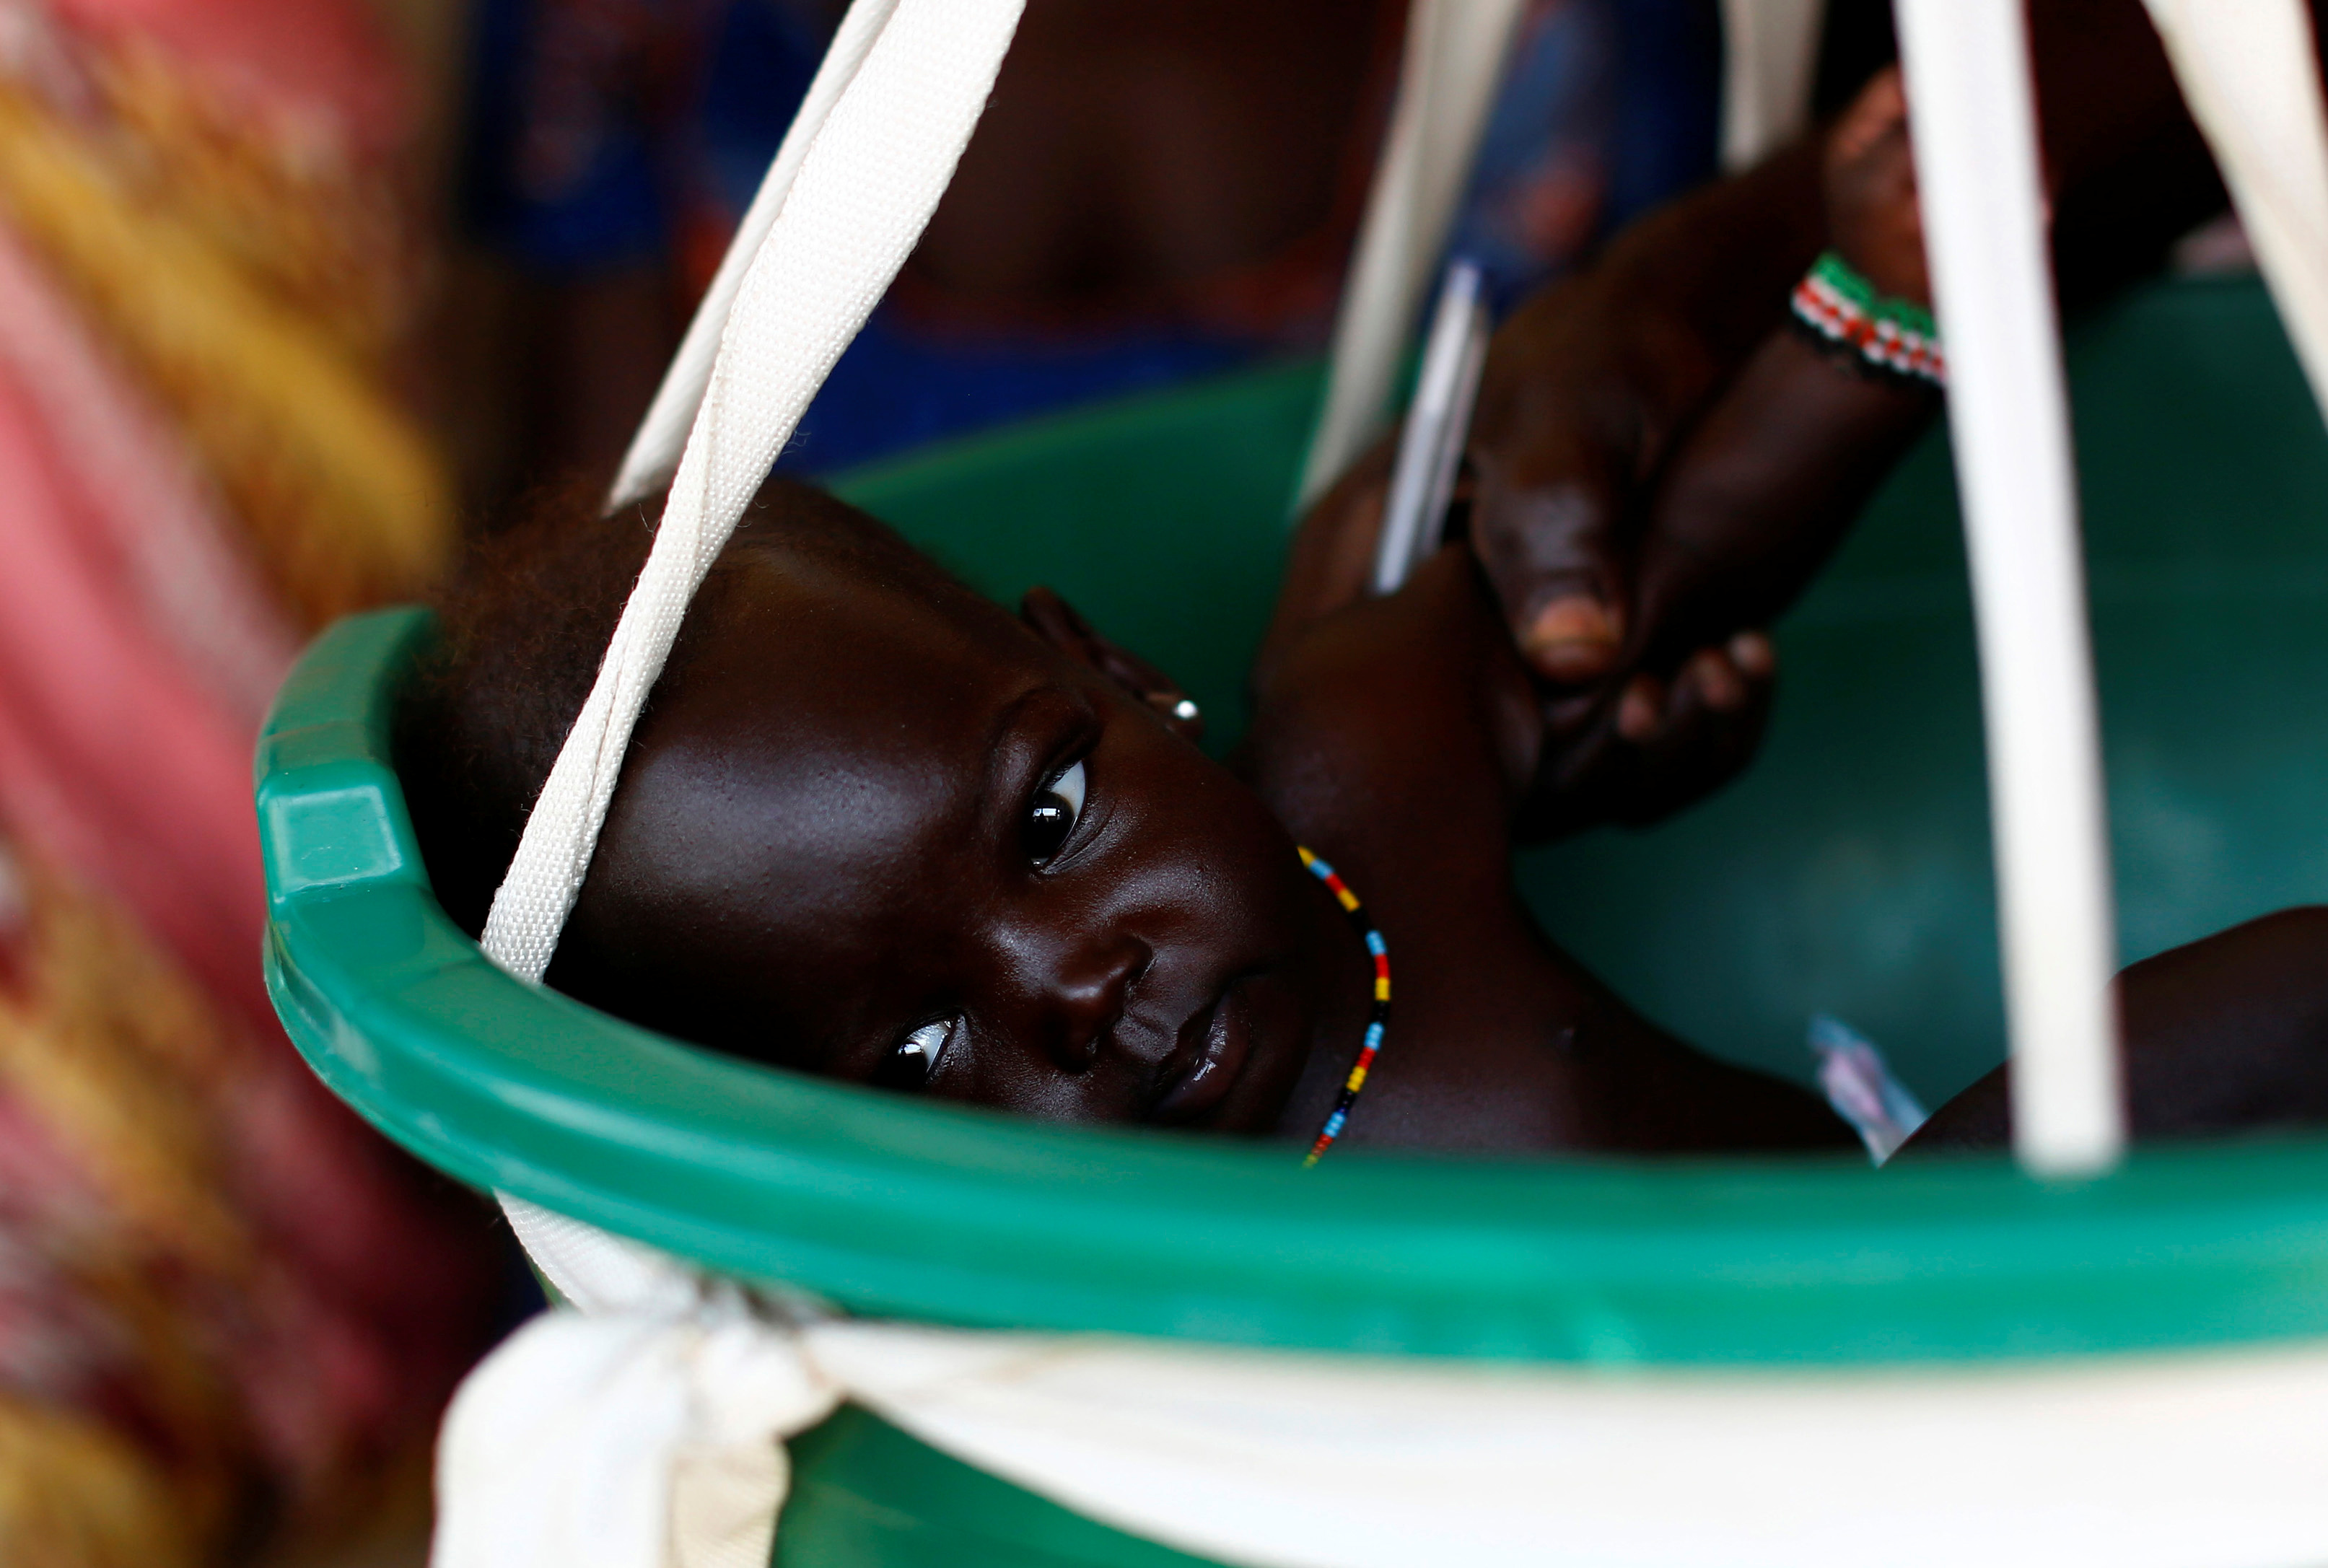 A baby is weighted on a scale in a health clinic in the capital Juba, South Sudan, January 23, 2017. Picture taken January 23, 2017. REUTERS/Siegfried Modola - RC157C1D0FF0